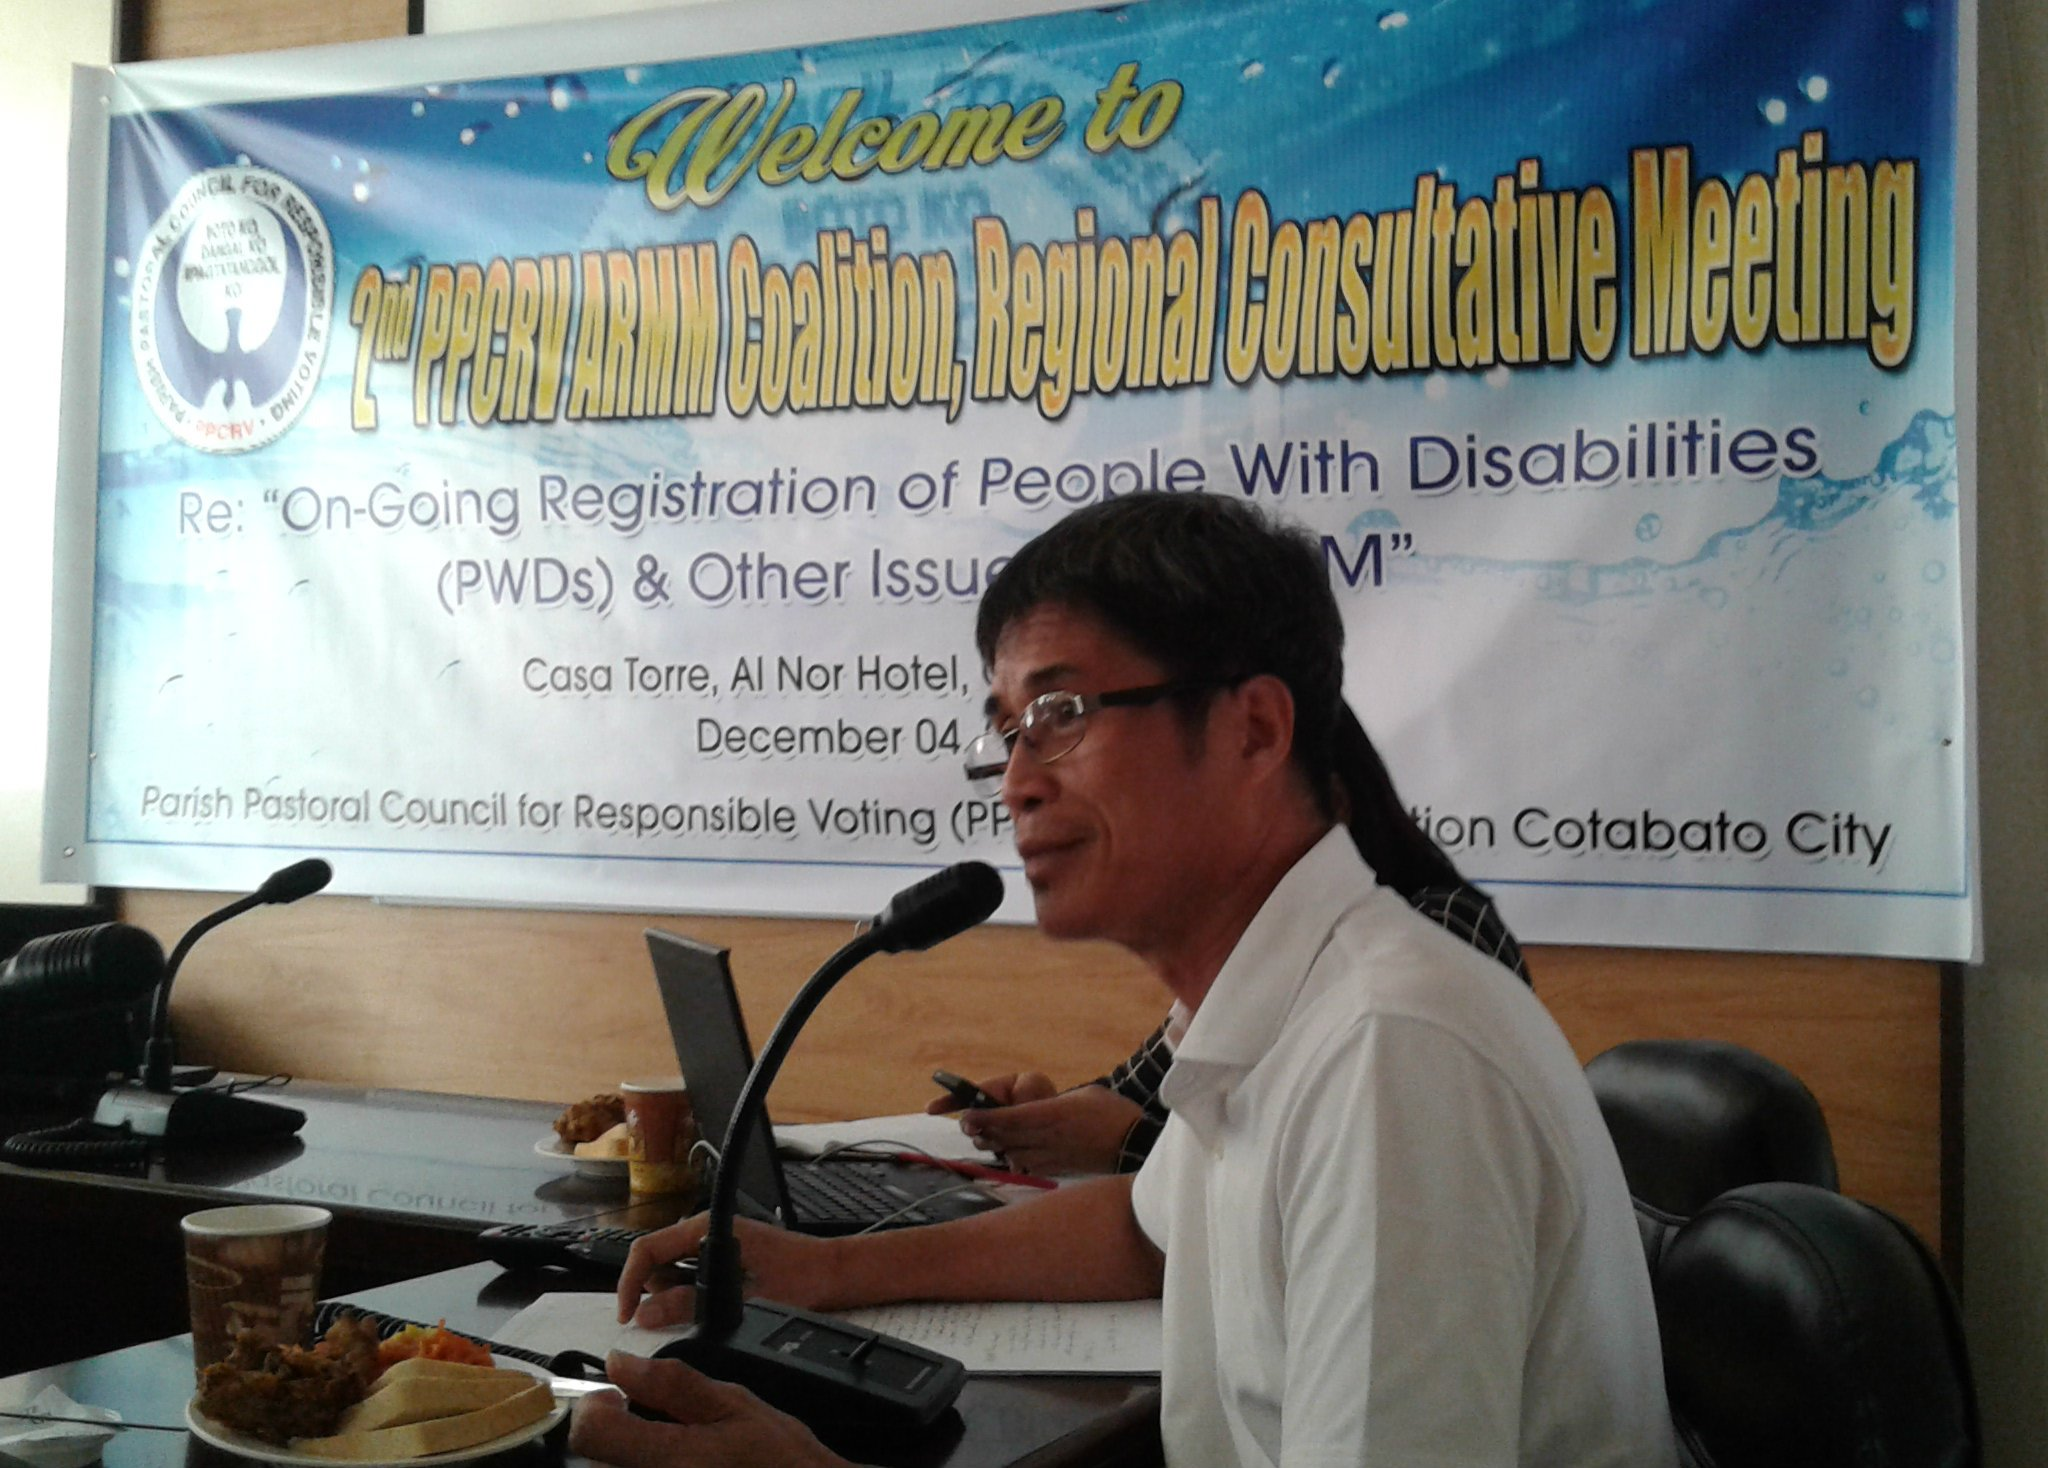 Fr. David Procalla, PPCRV's regional coordinator for Mindanao and the ARMM, raises the need for information dissemination campaigns for PWD voters not just in schools but also in churches and mosques. (Photo by JAKE SORIANO)